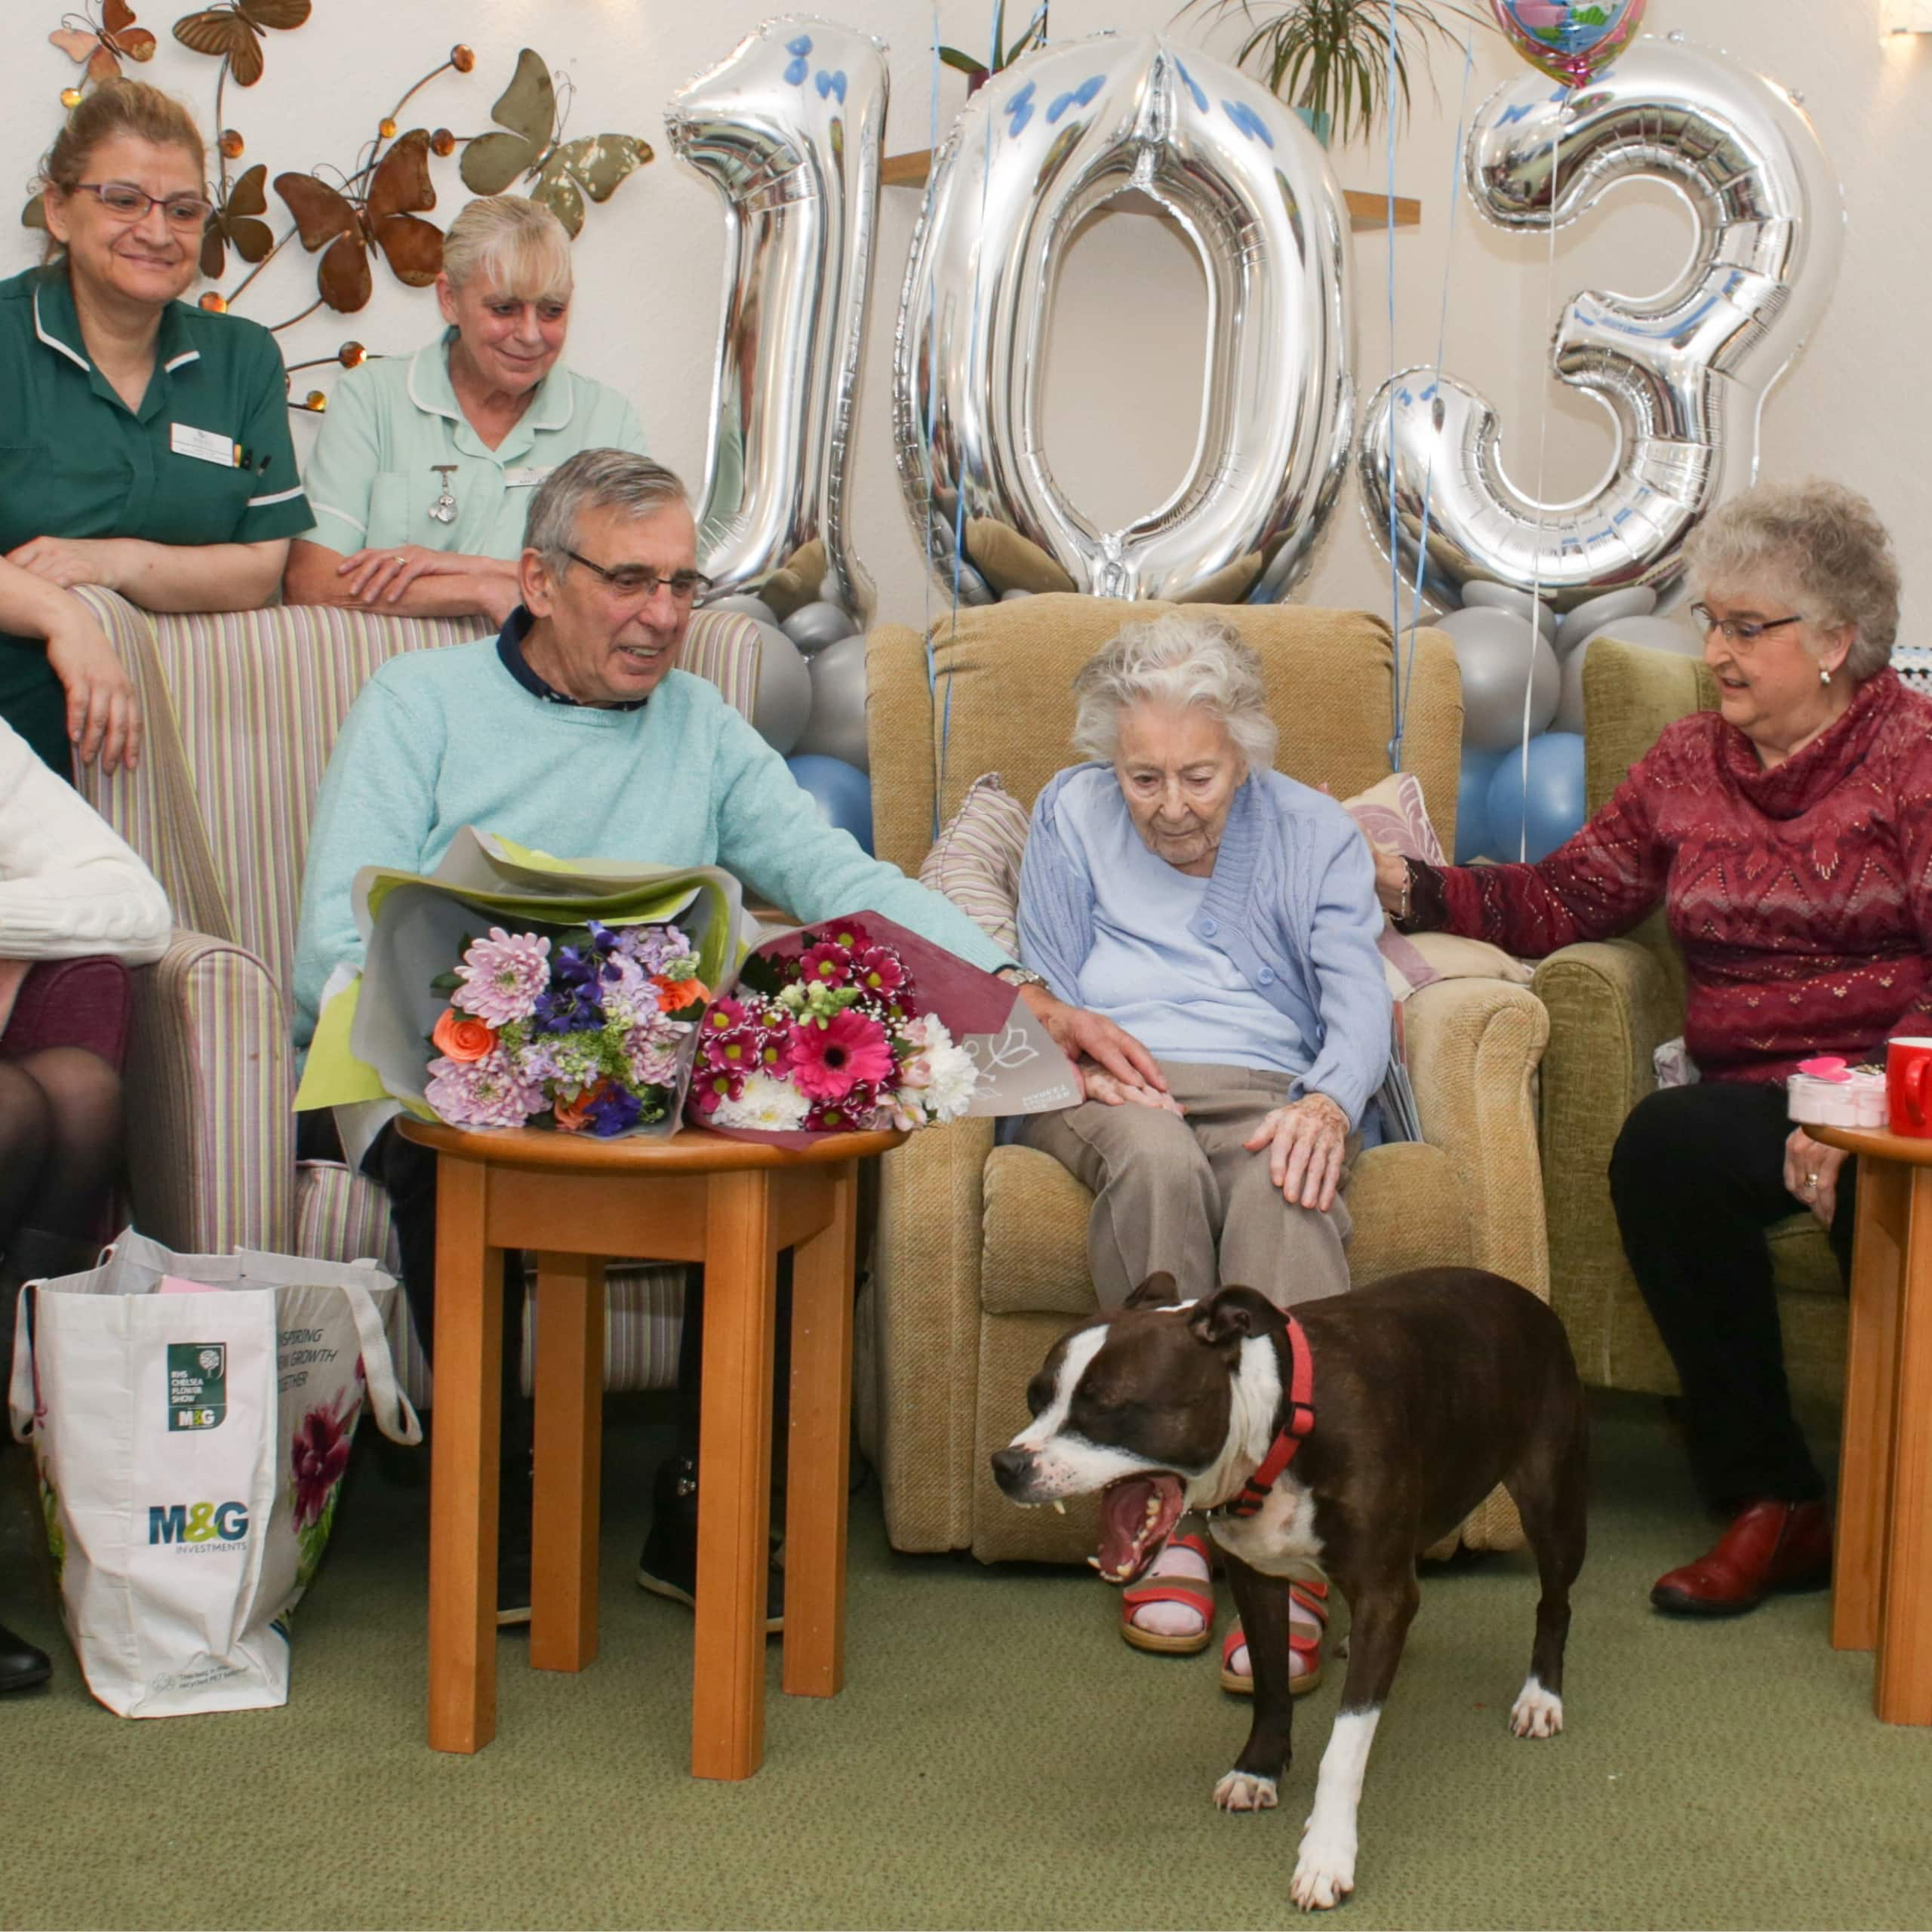 Westerham Place Care Home resident Mickie surrounded by friends and family celebrating her birthday.